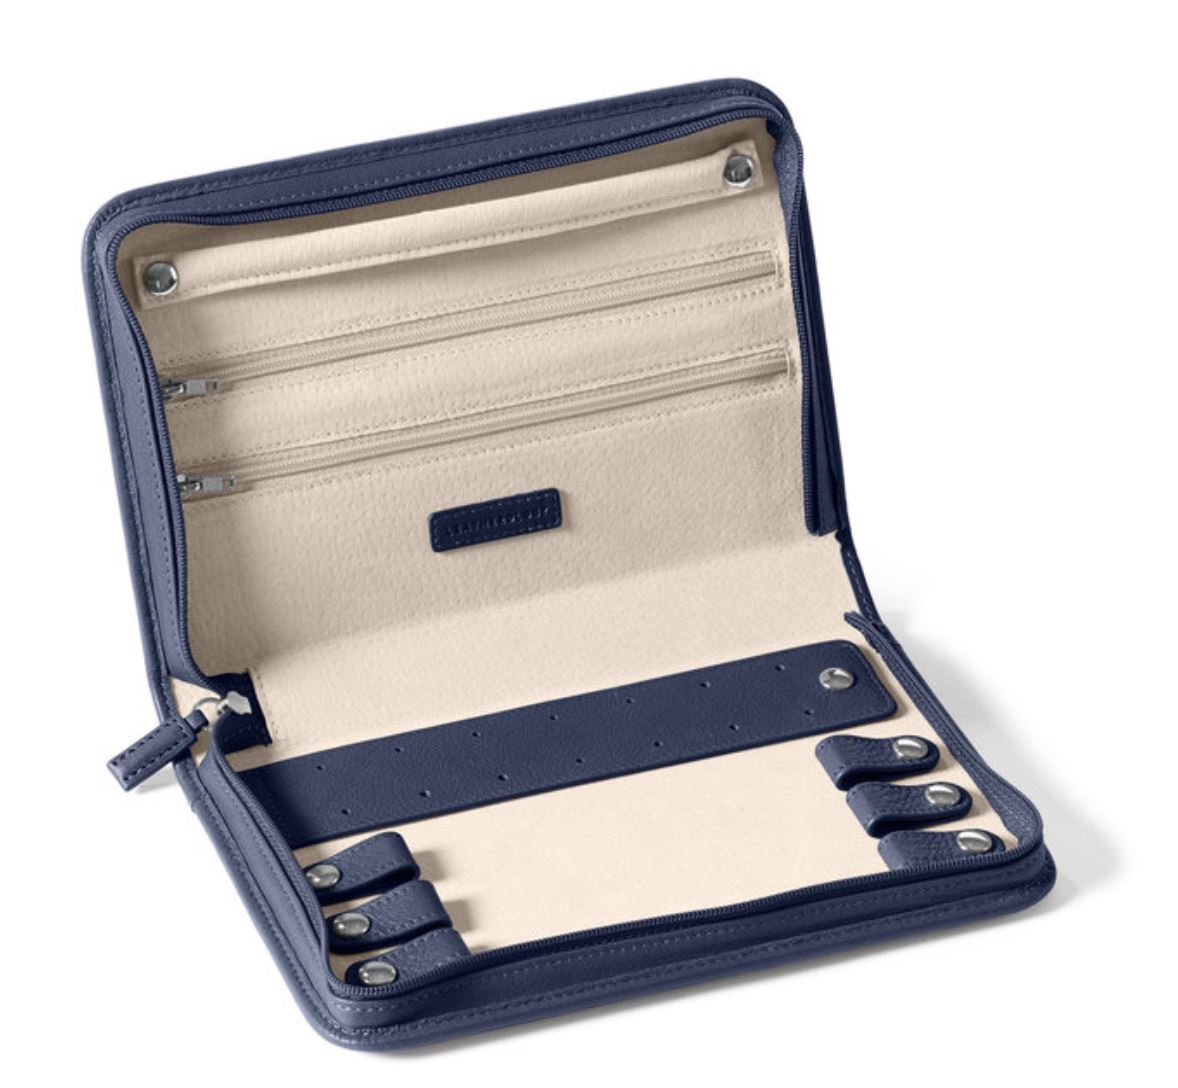 If you're a jewelry fan and don't want travel to get you down, consider this hard-shell leather jewelry organizer. Its very well-made and the zippers and snaps are heavy duty. The case will keep your jewelry protected and even has a hole-punch strap for keeping earrings safe. It's also available in many beautiful colors. Don't forget: Always keep your jewelry with you in your carry-on while traveling - never leave in your checked bags!  (LEATHEROLOGY: $85)